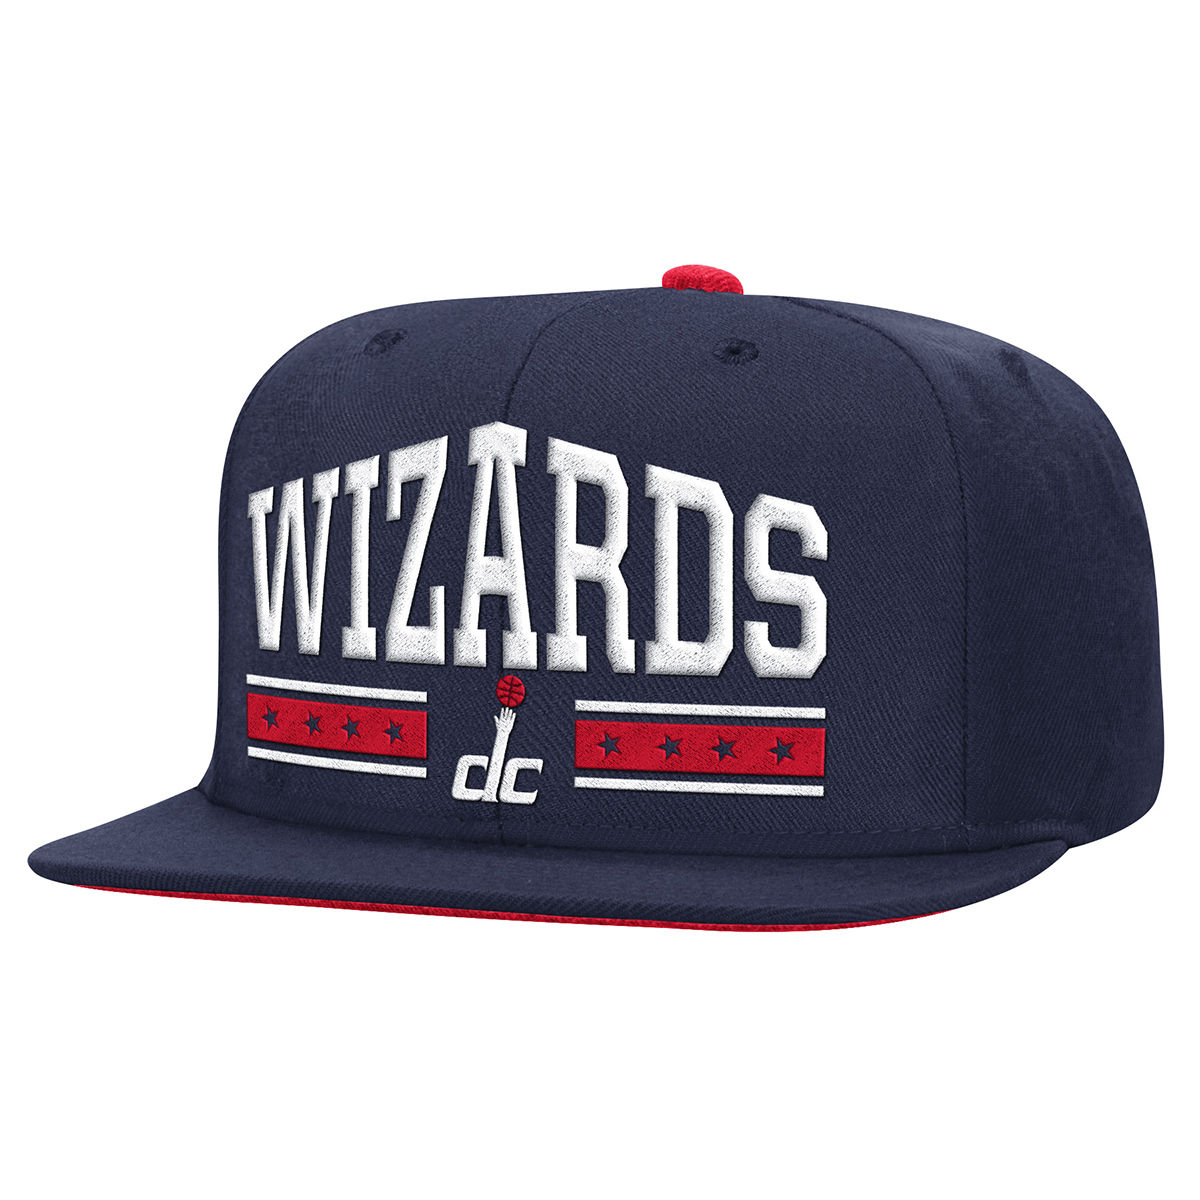 Washington Wizards Adult VM01Z Snapback Hat